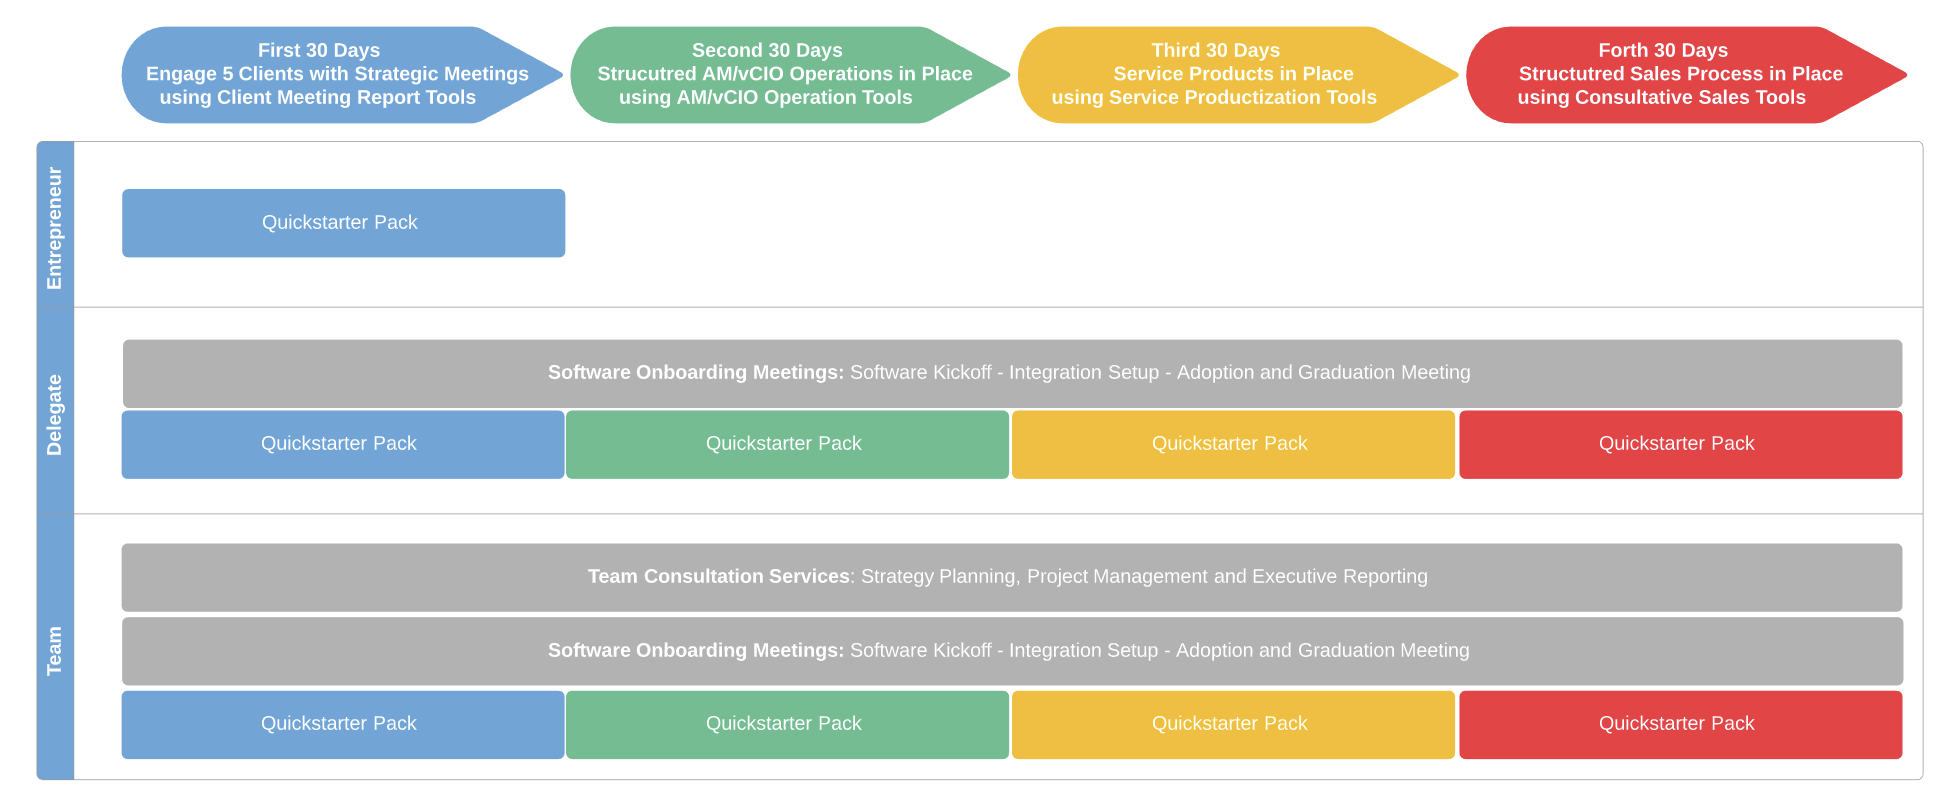 Onboarding and Success Process of the Managed Services Platform